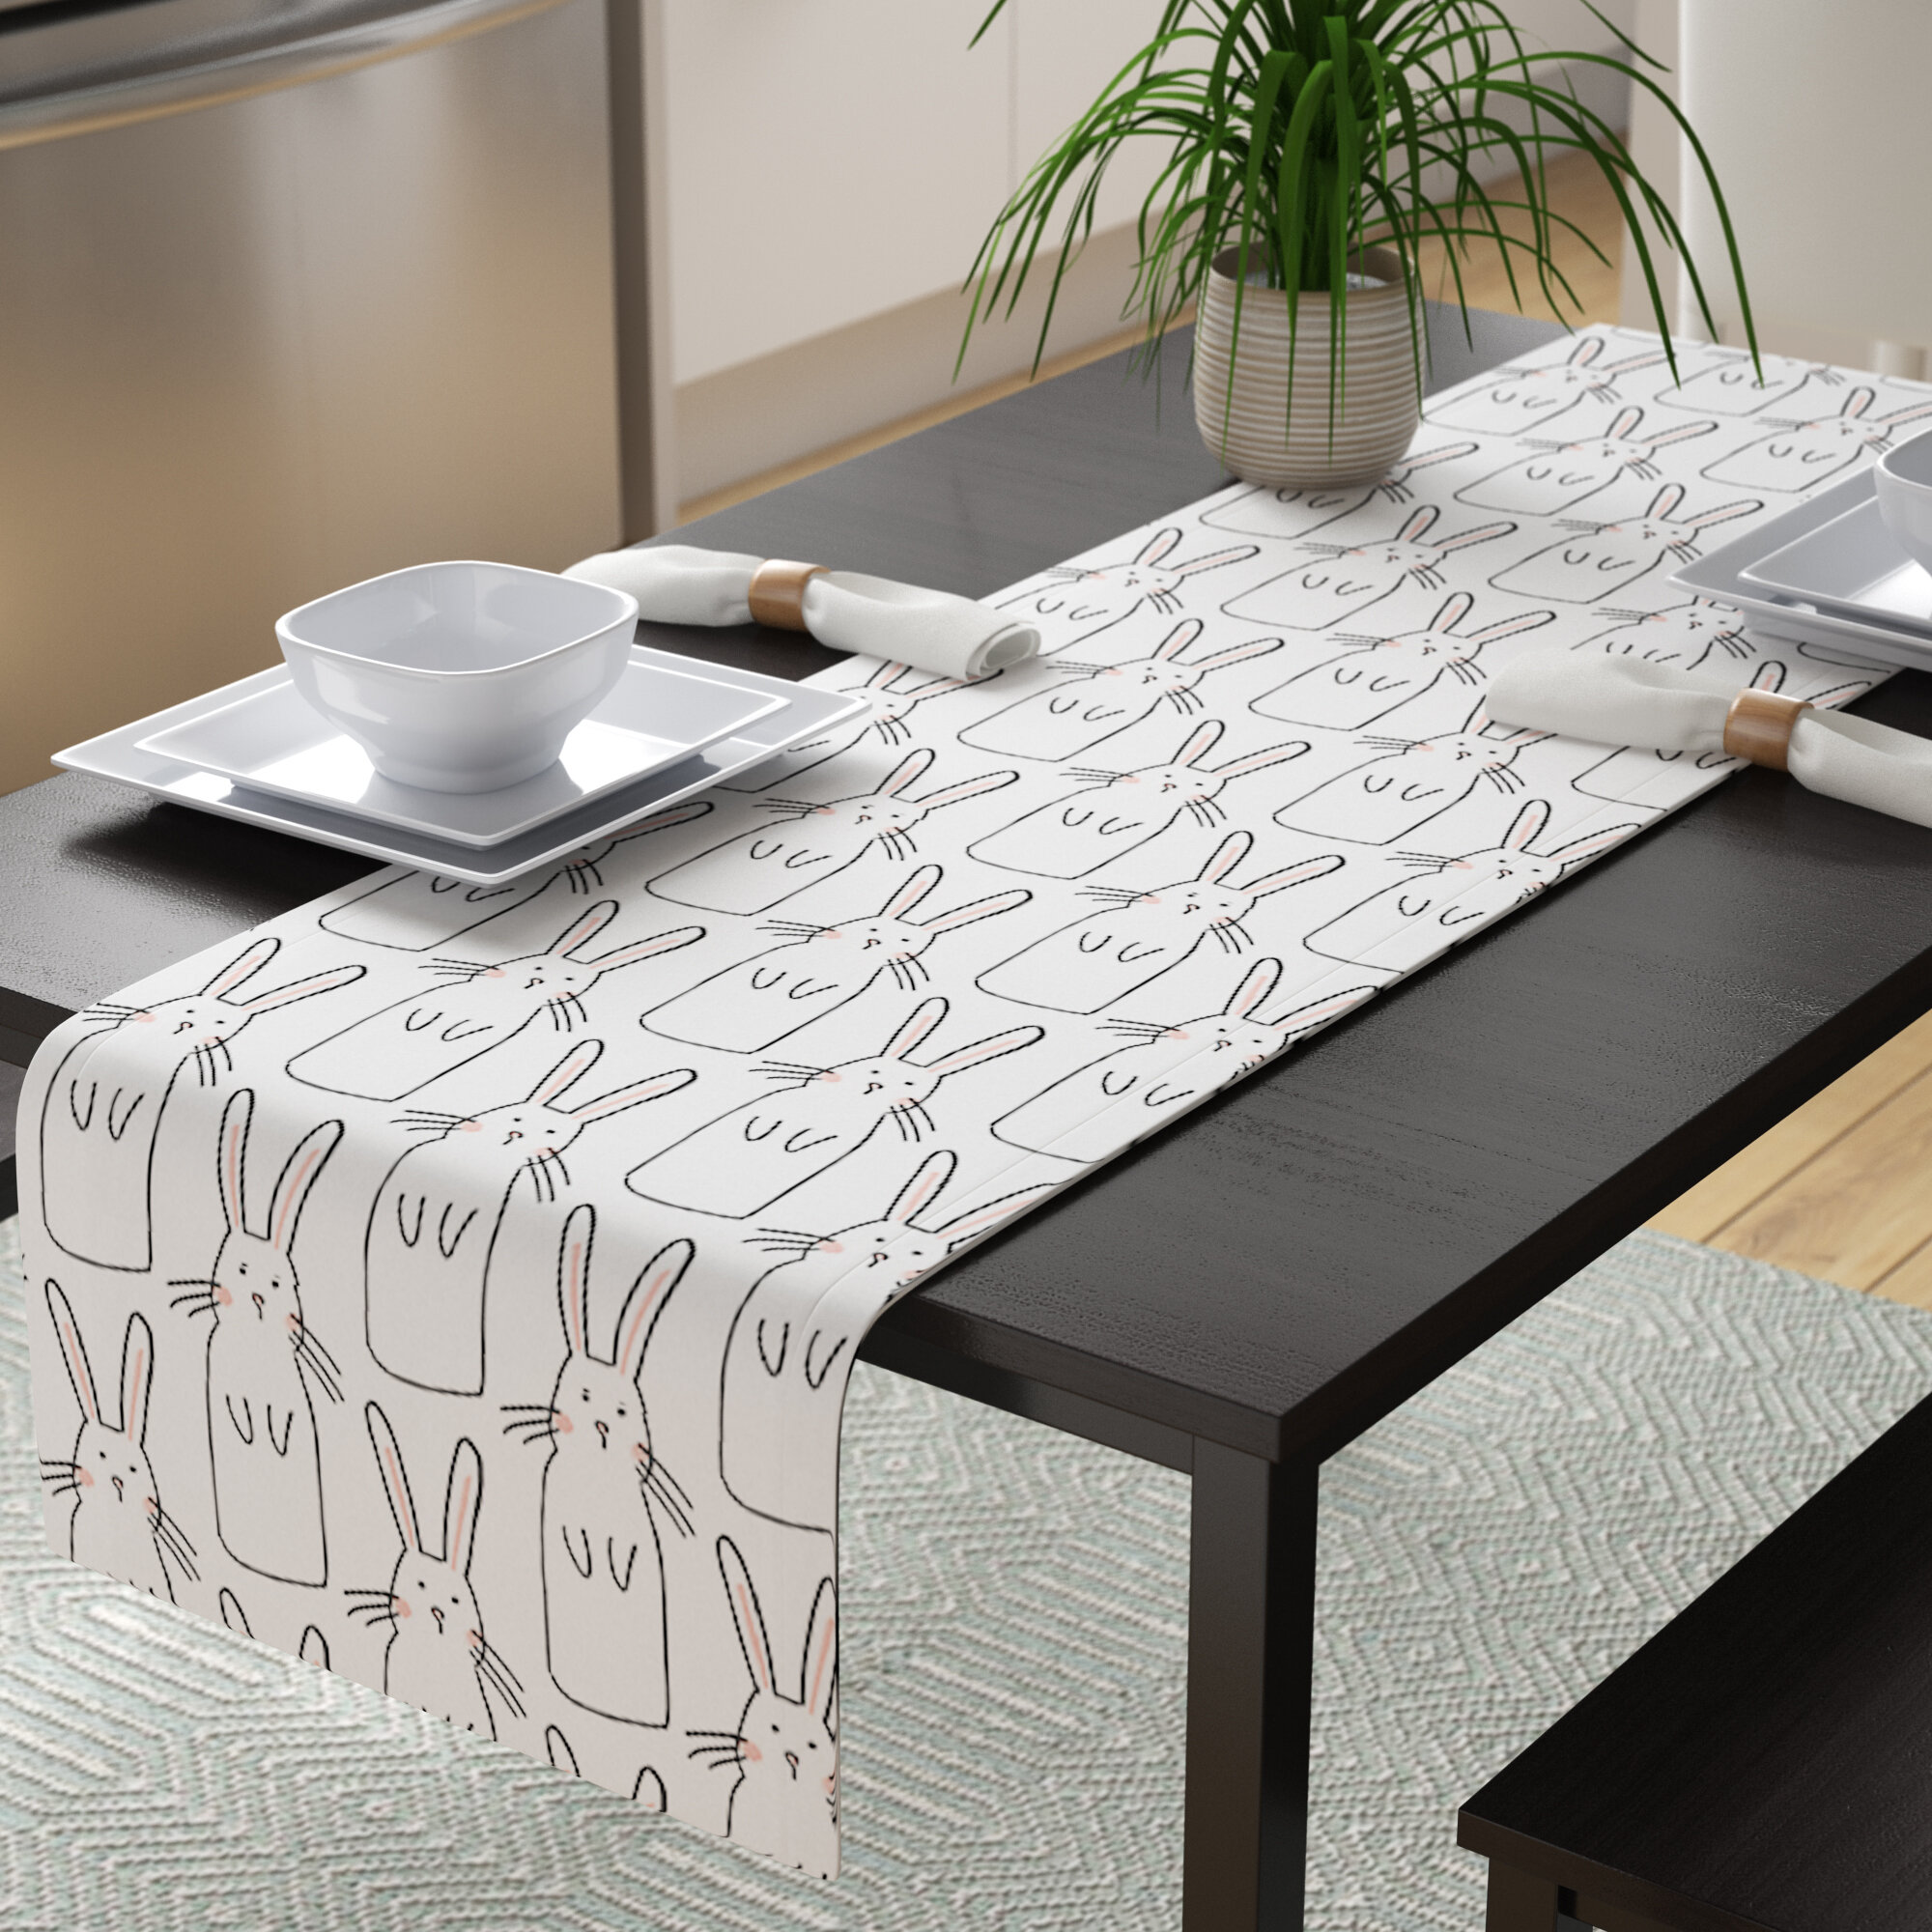 Modern Contemporary Table Runner Table Linens Up To 65 Off Until 11 20 Wayfair Wayfair